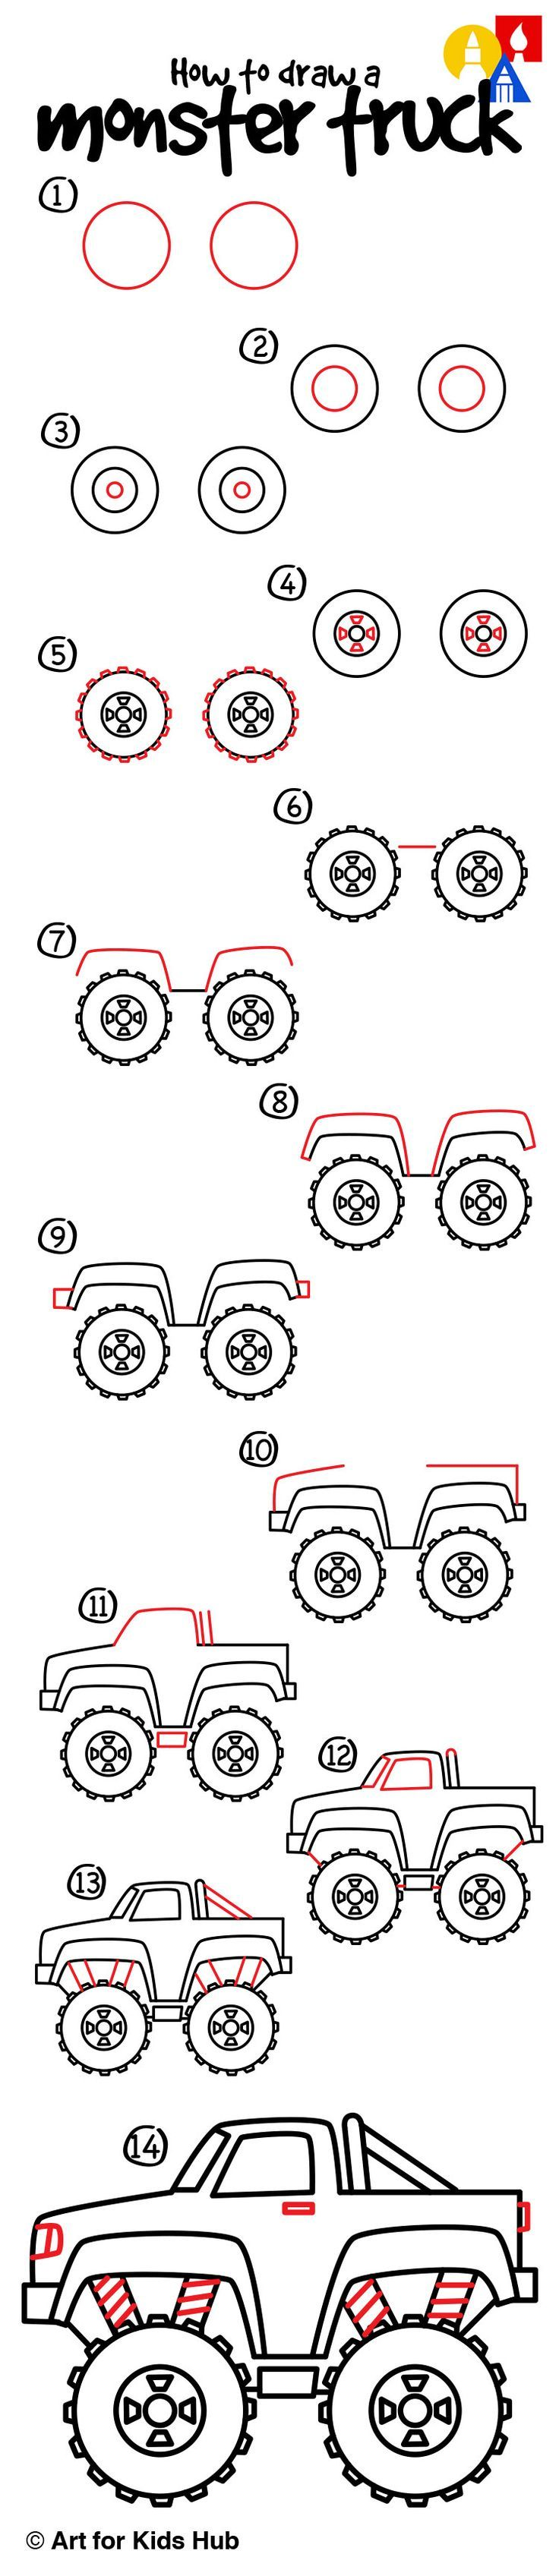 How To Draw A Monster Truck - Art For Kids Hub ...